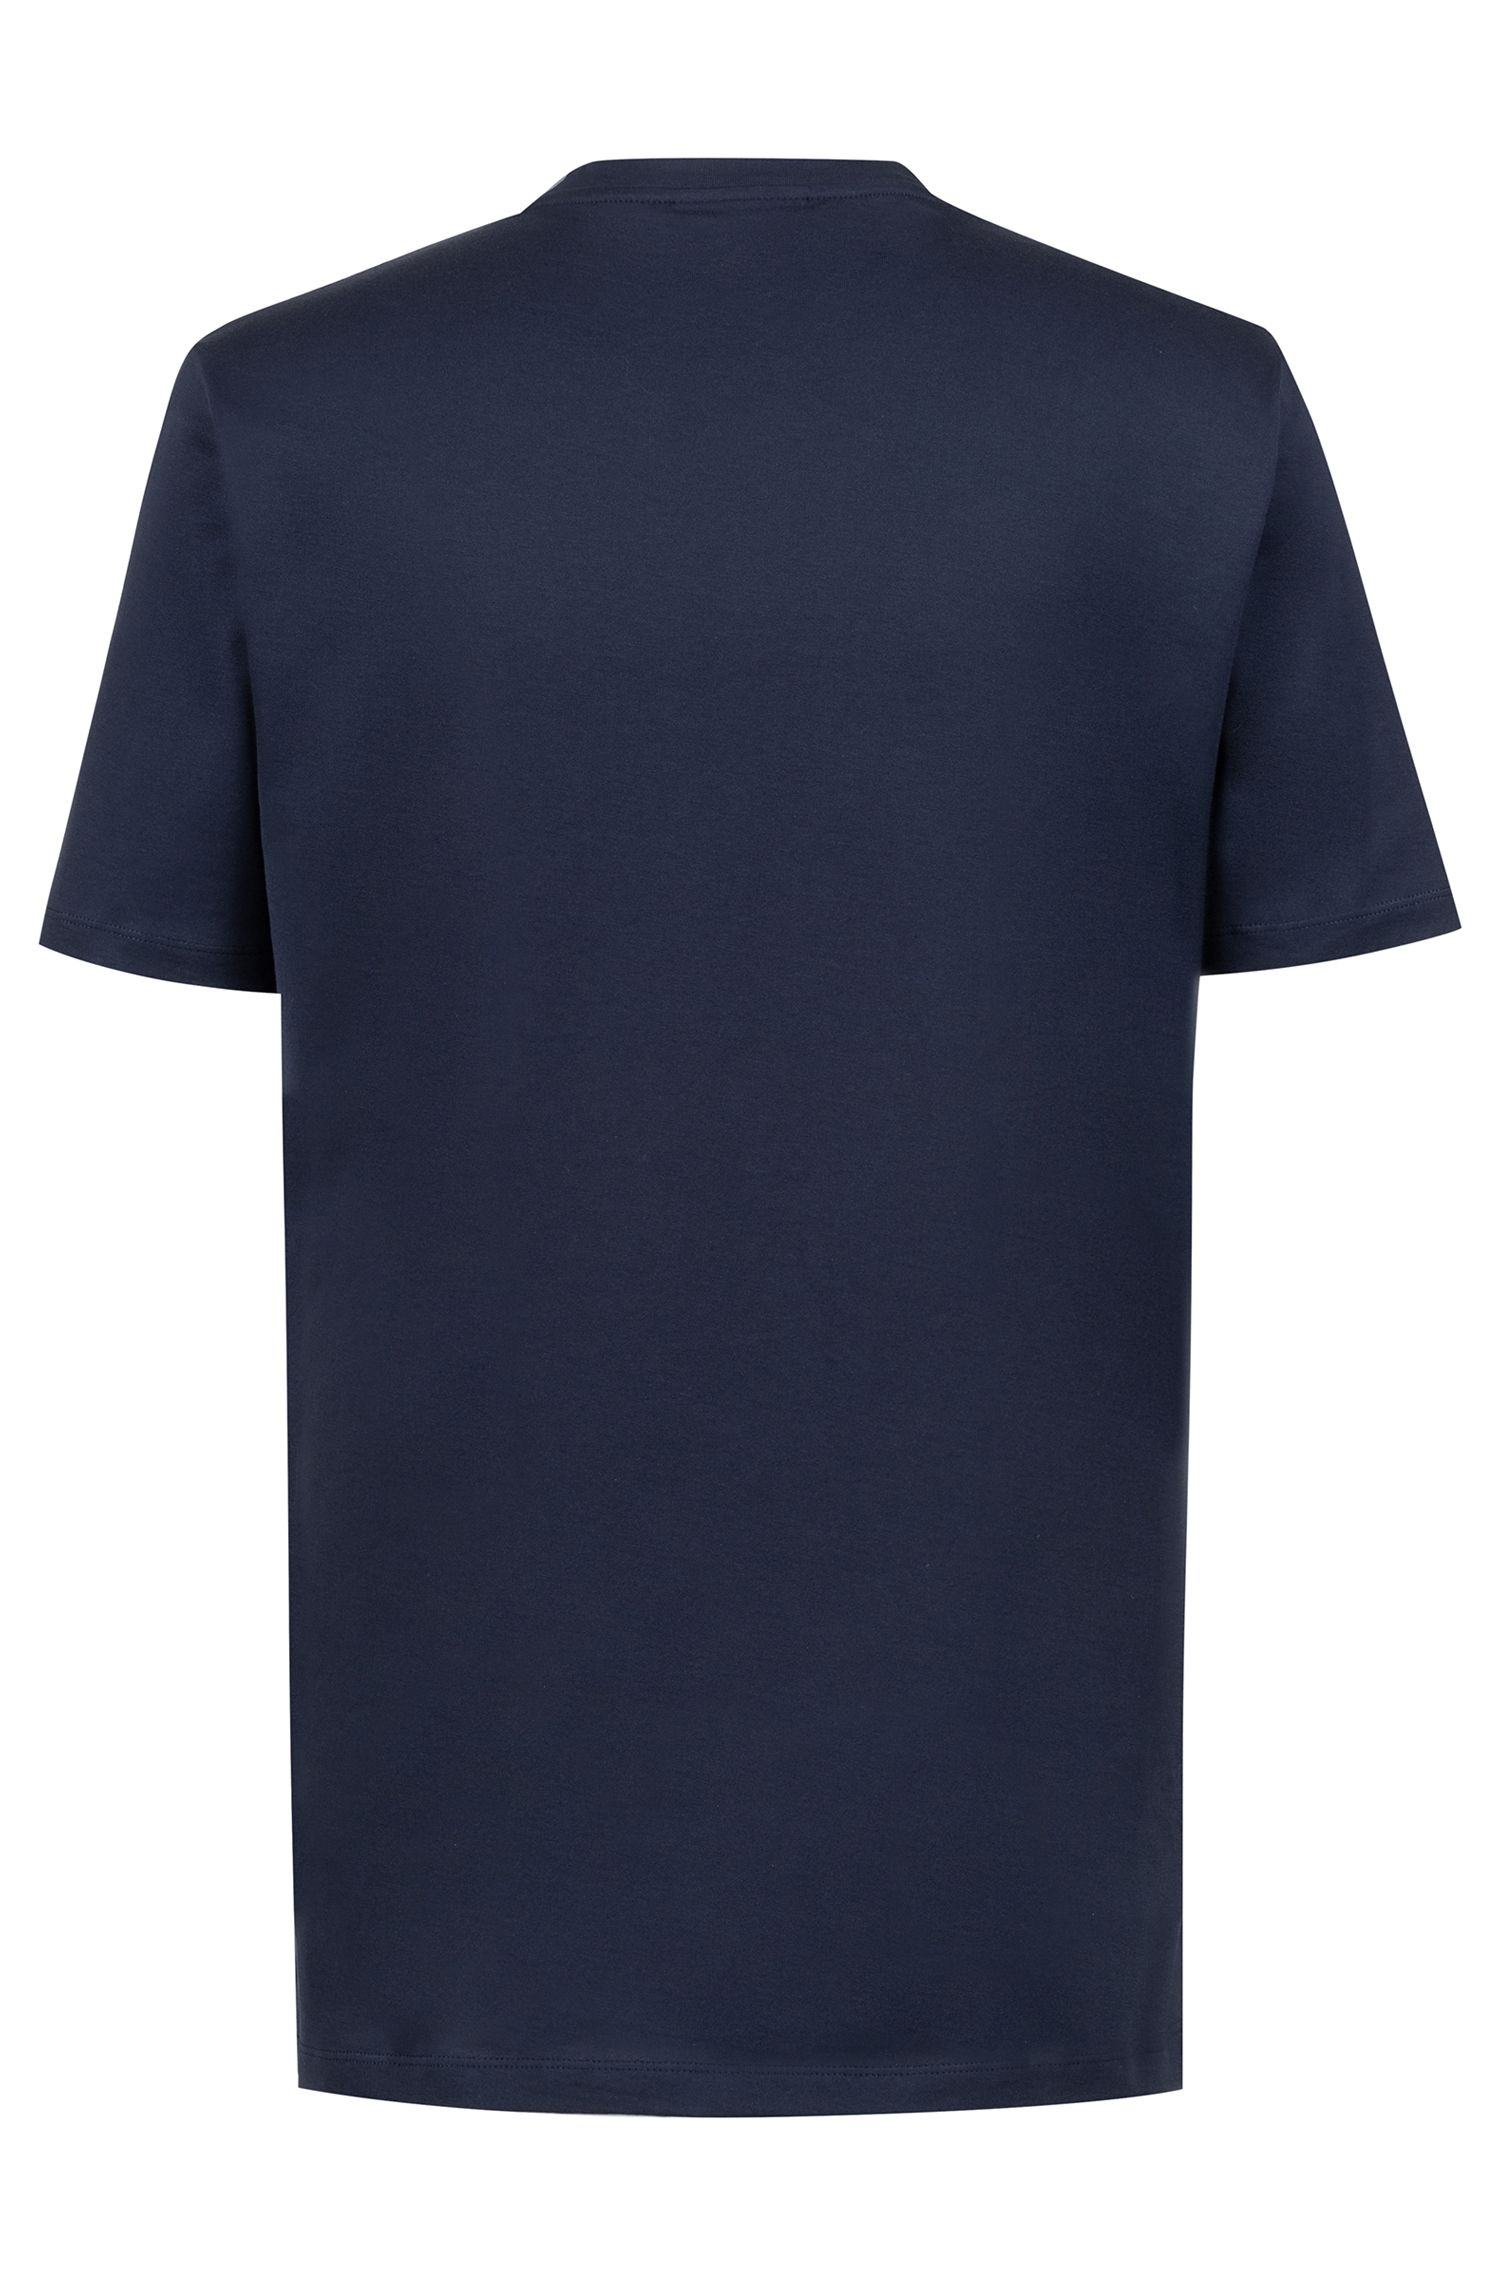 Crew-neck T-shirt in cotton with reverse-logo print, Dark Blue